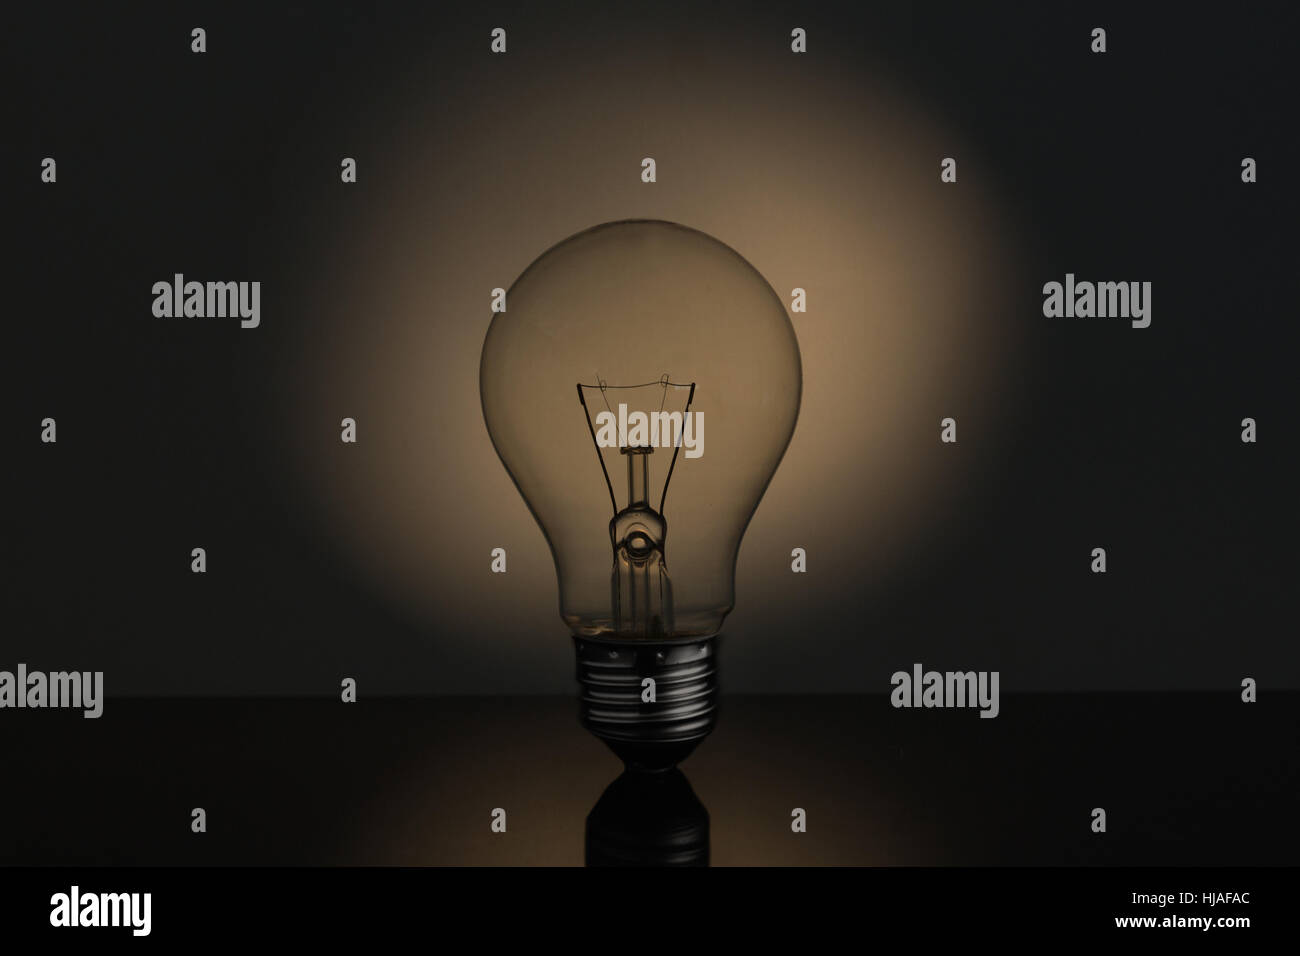 Big light bulb standing in sepia tones on reflective black surface - Stock Image